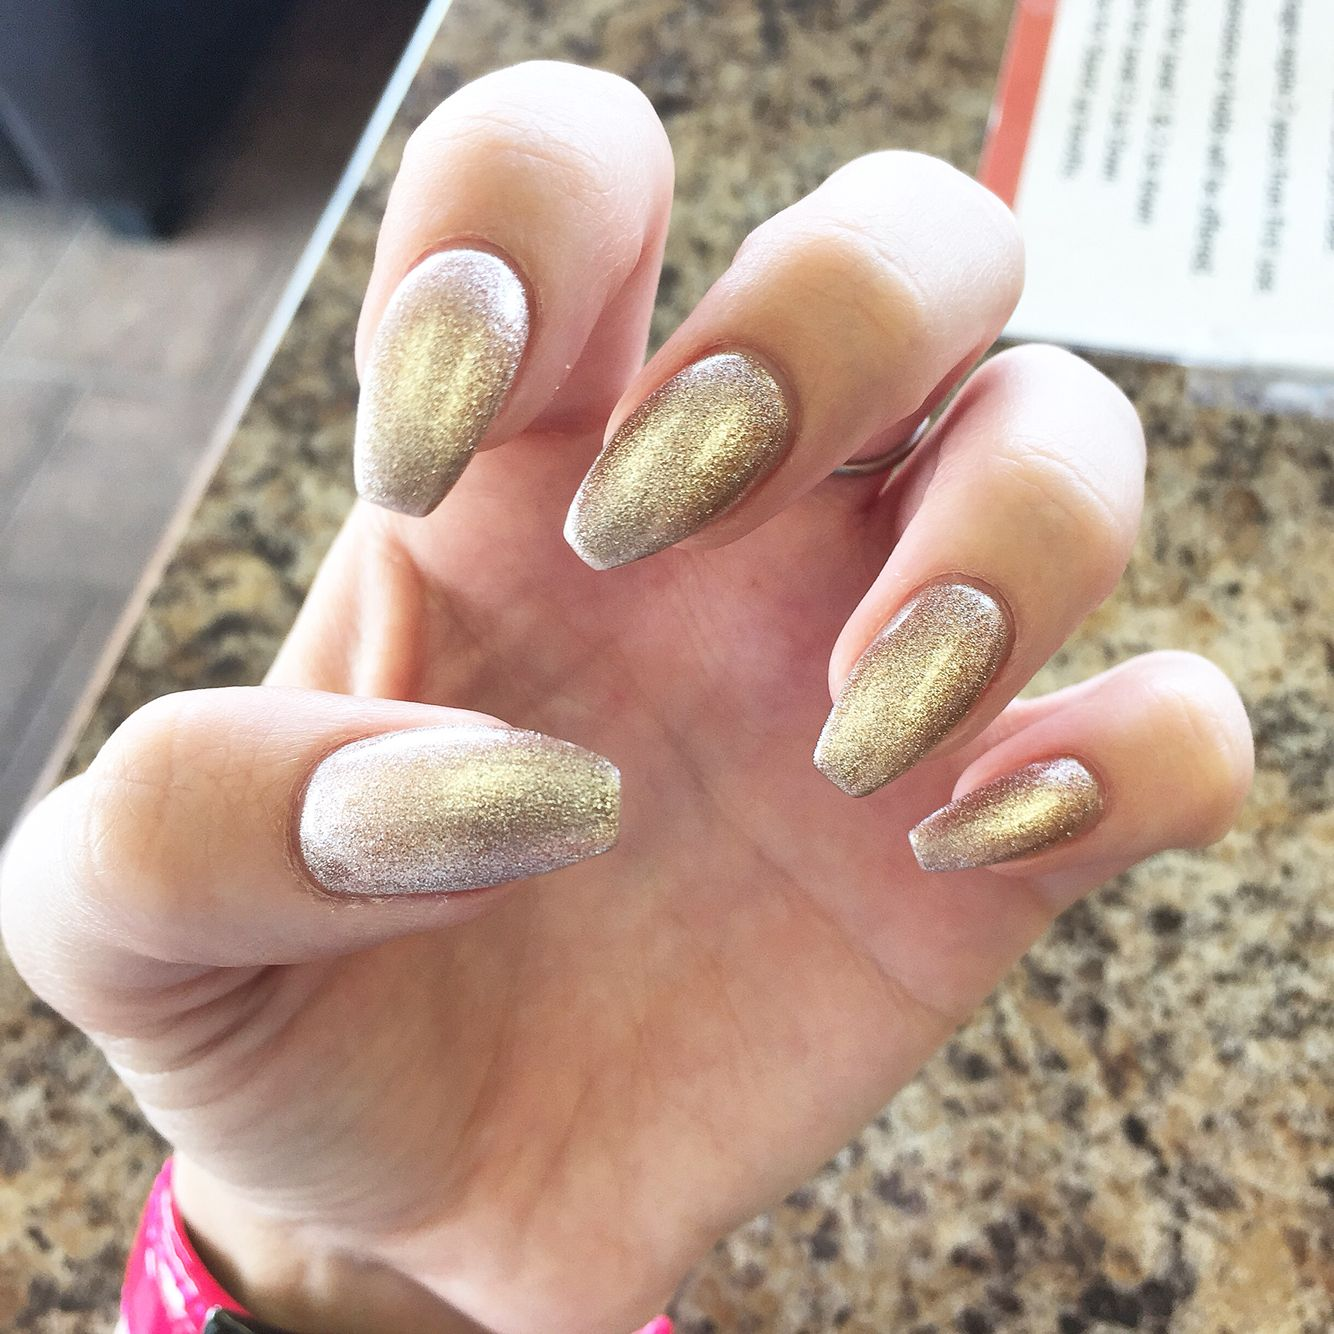 LCN gel manicure over natural nails. Coffin shaped nails. Orly gel ...